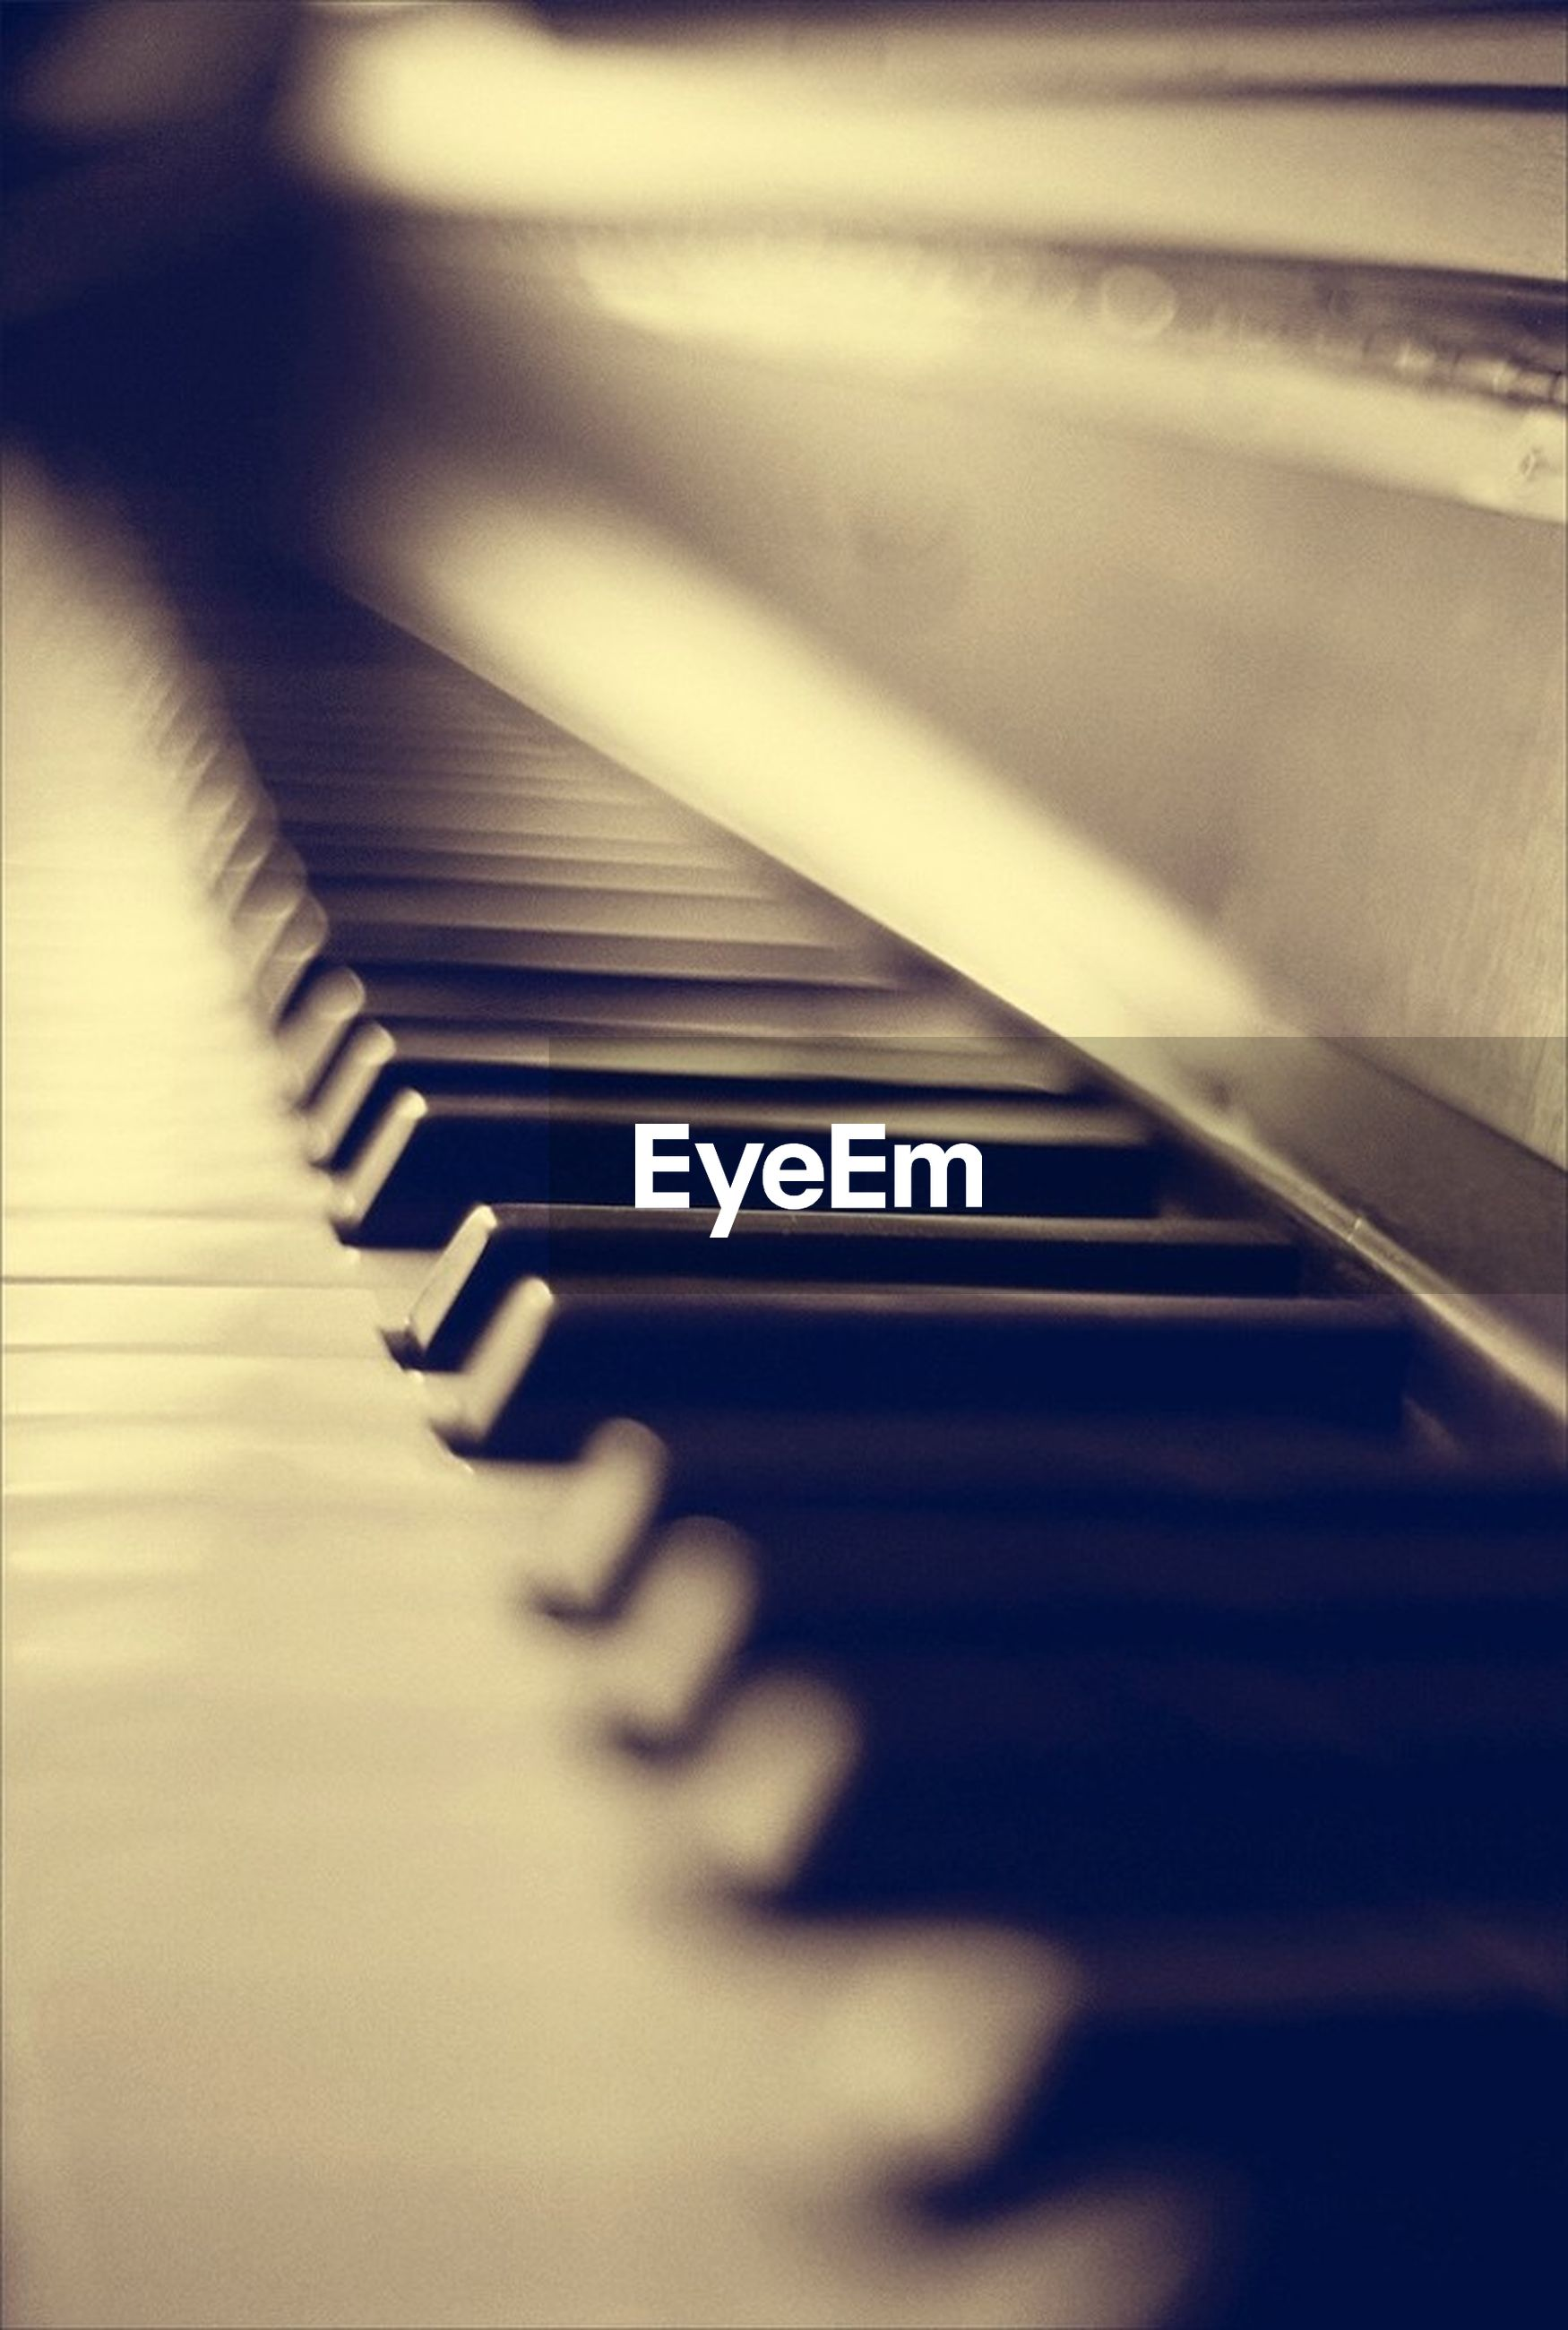 indoors, music, close-up, piano key, musical instrument, arts culture and entertainment, piano, selective focus, high angle view, musical equipment, still life, part of, no people, in a row, technology, shadow, metal, focus on foreground, pattern, detail